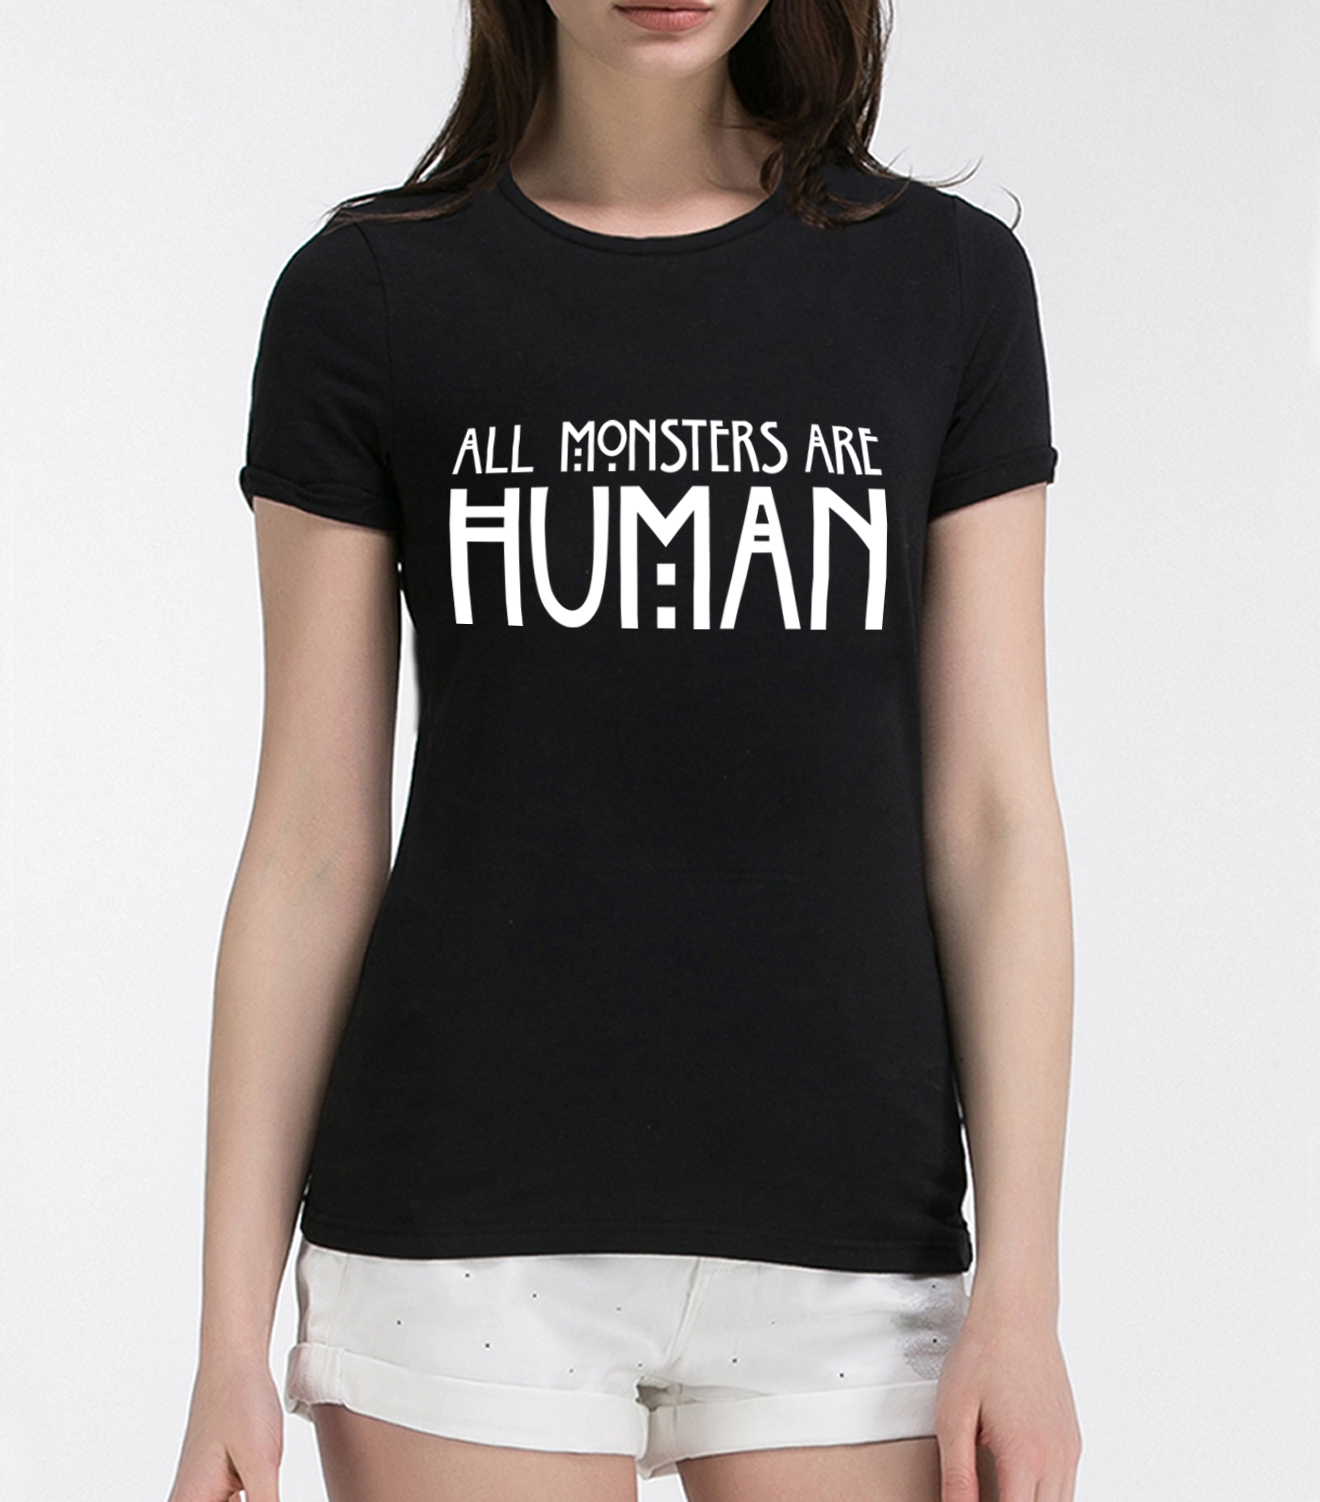 Black t shirt for girl - 2017 All Are Human Women Black Cotton T Shirt Girl Tops Tee Shirt T Shirt